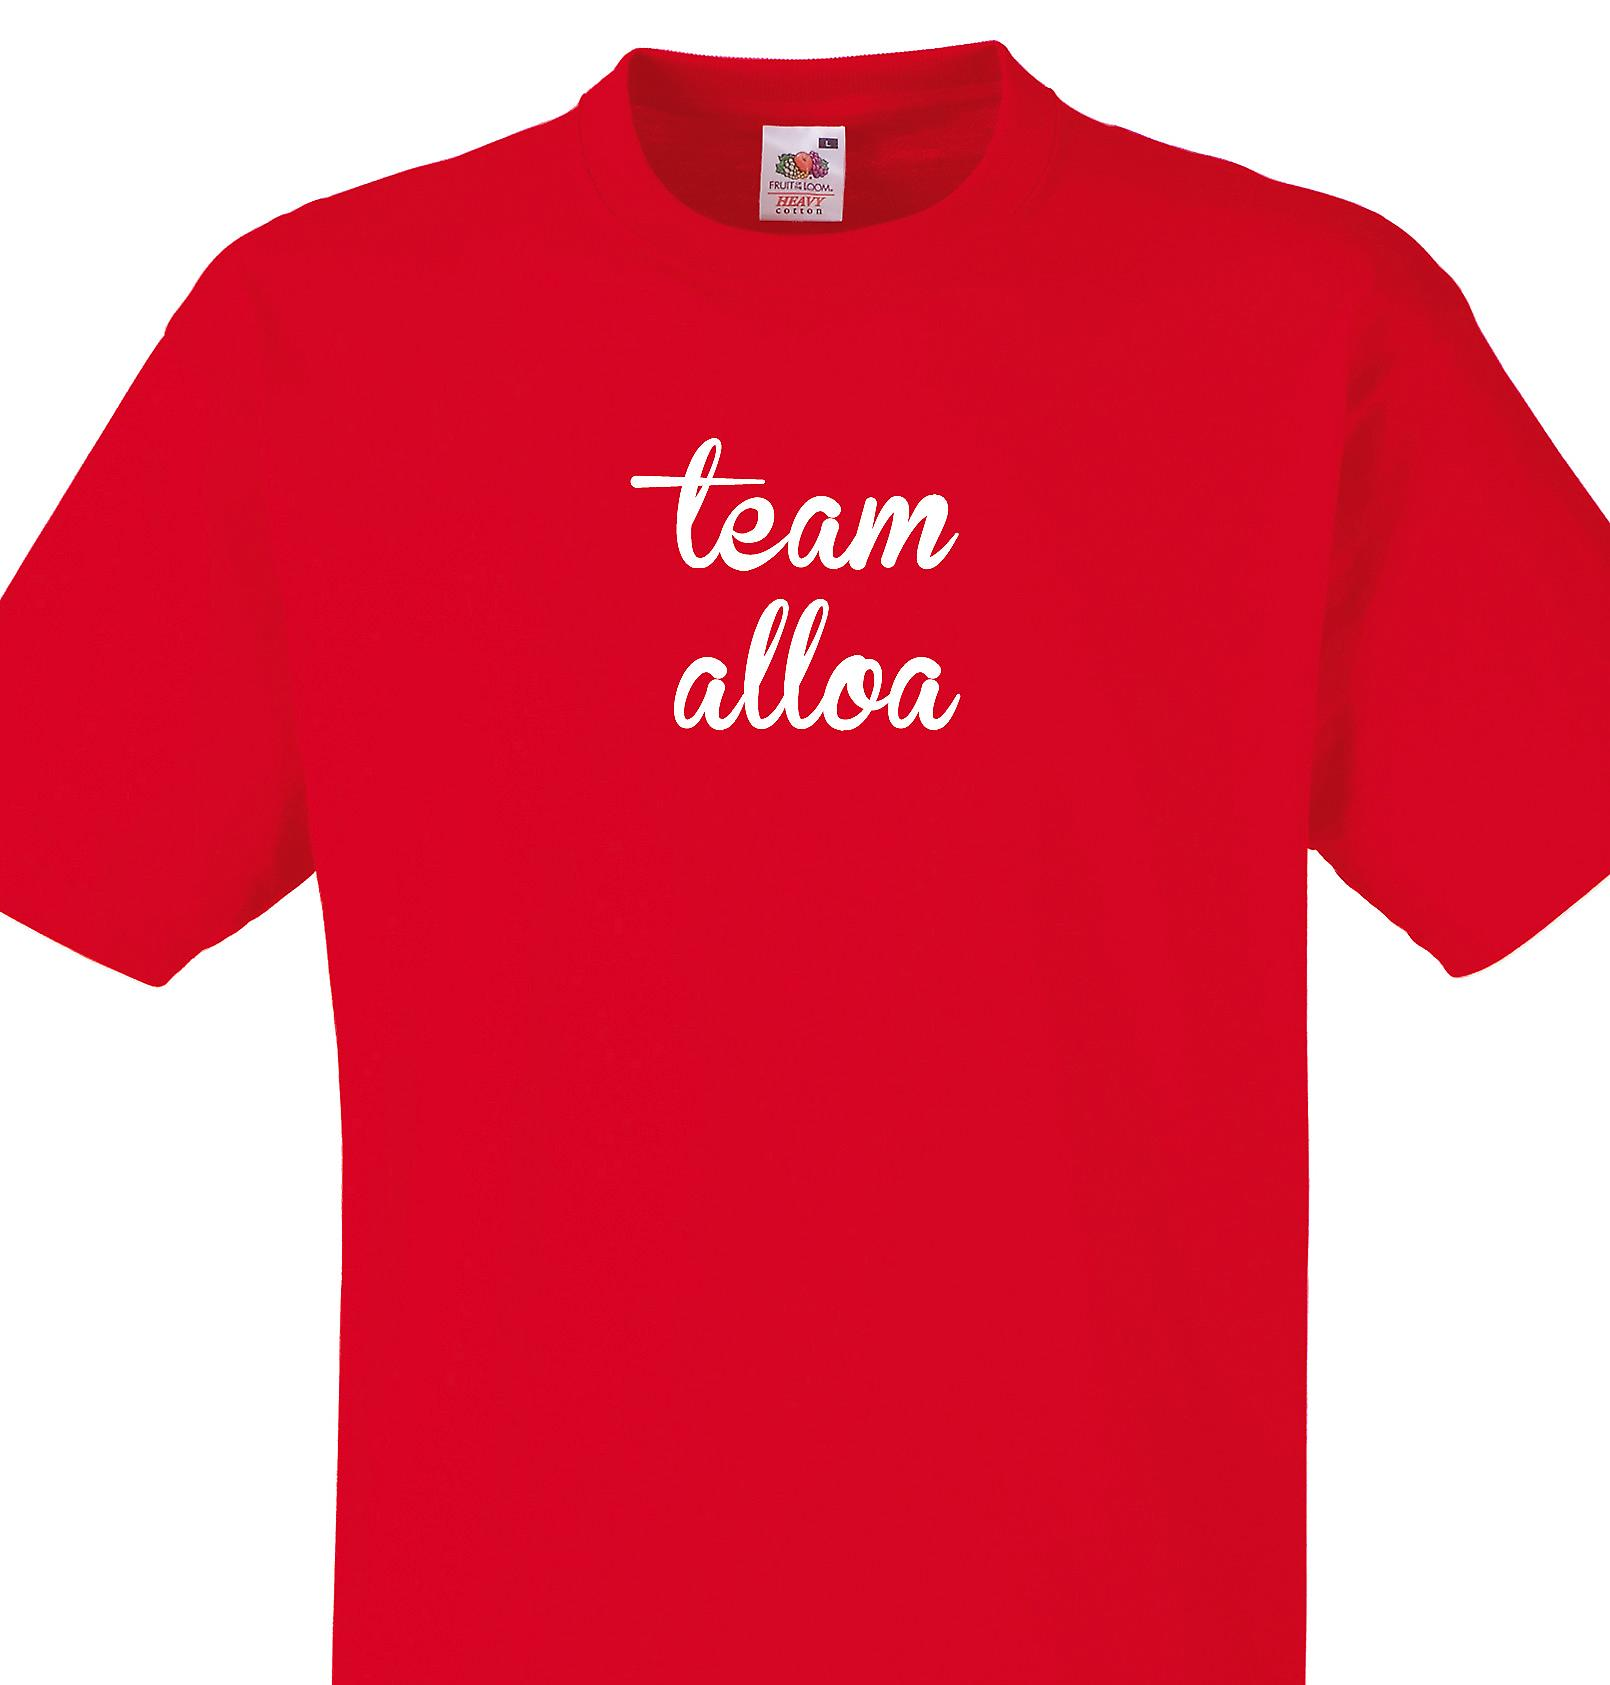 Team Alloa Red T shirt